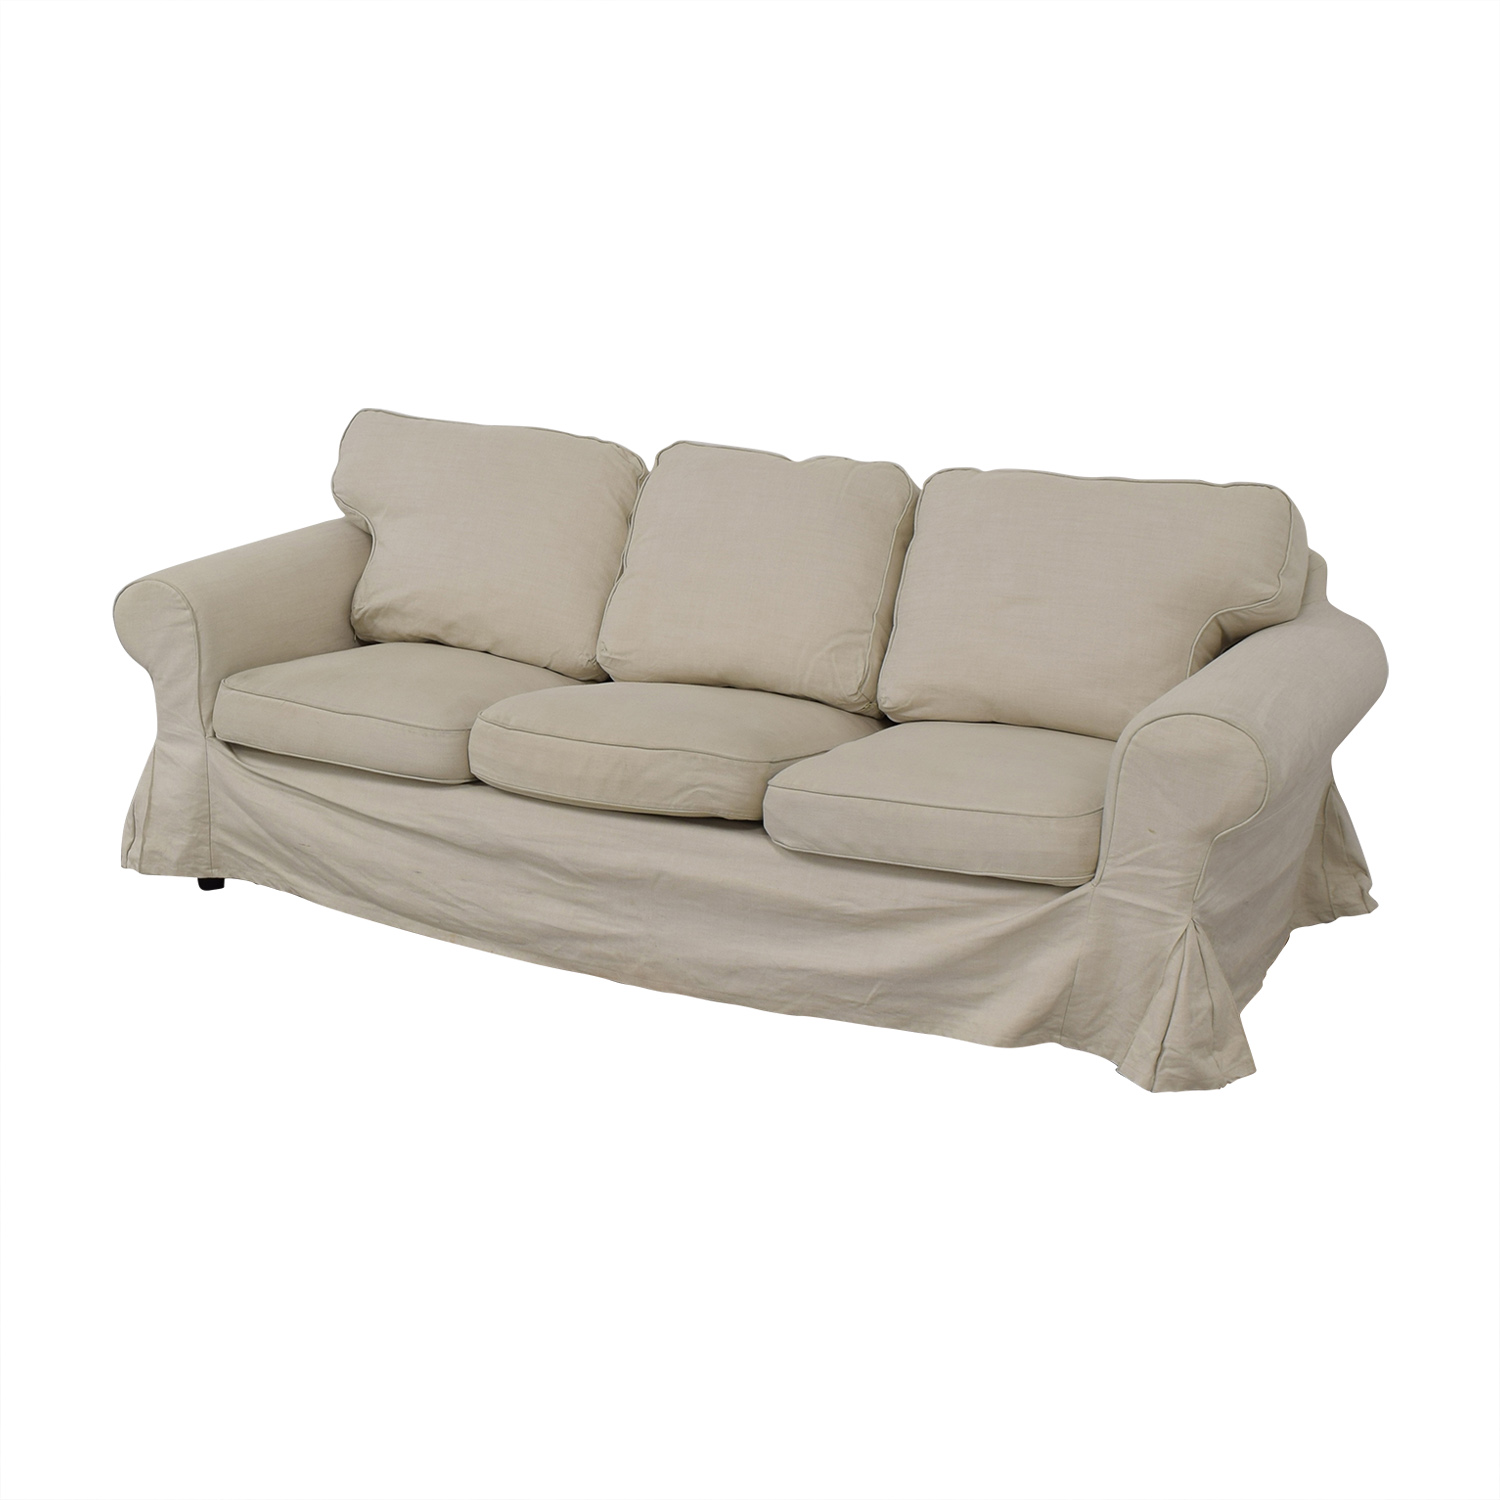 IKEA IKEA Ektorp Lofallet Beige Three-Cushion Sofa dimensions